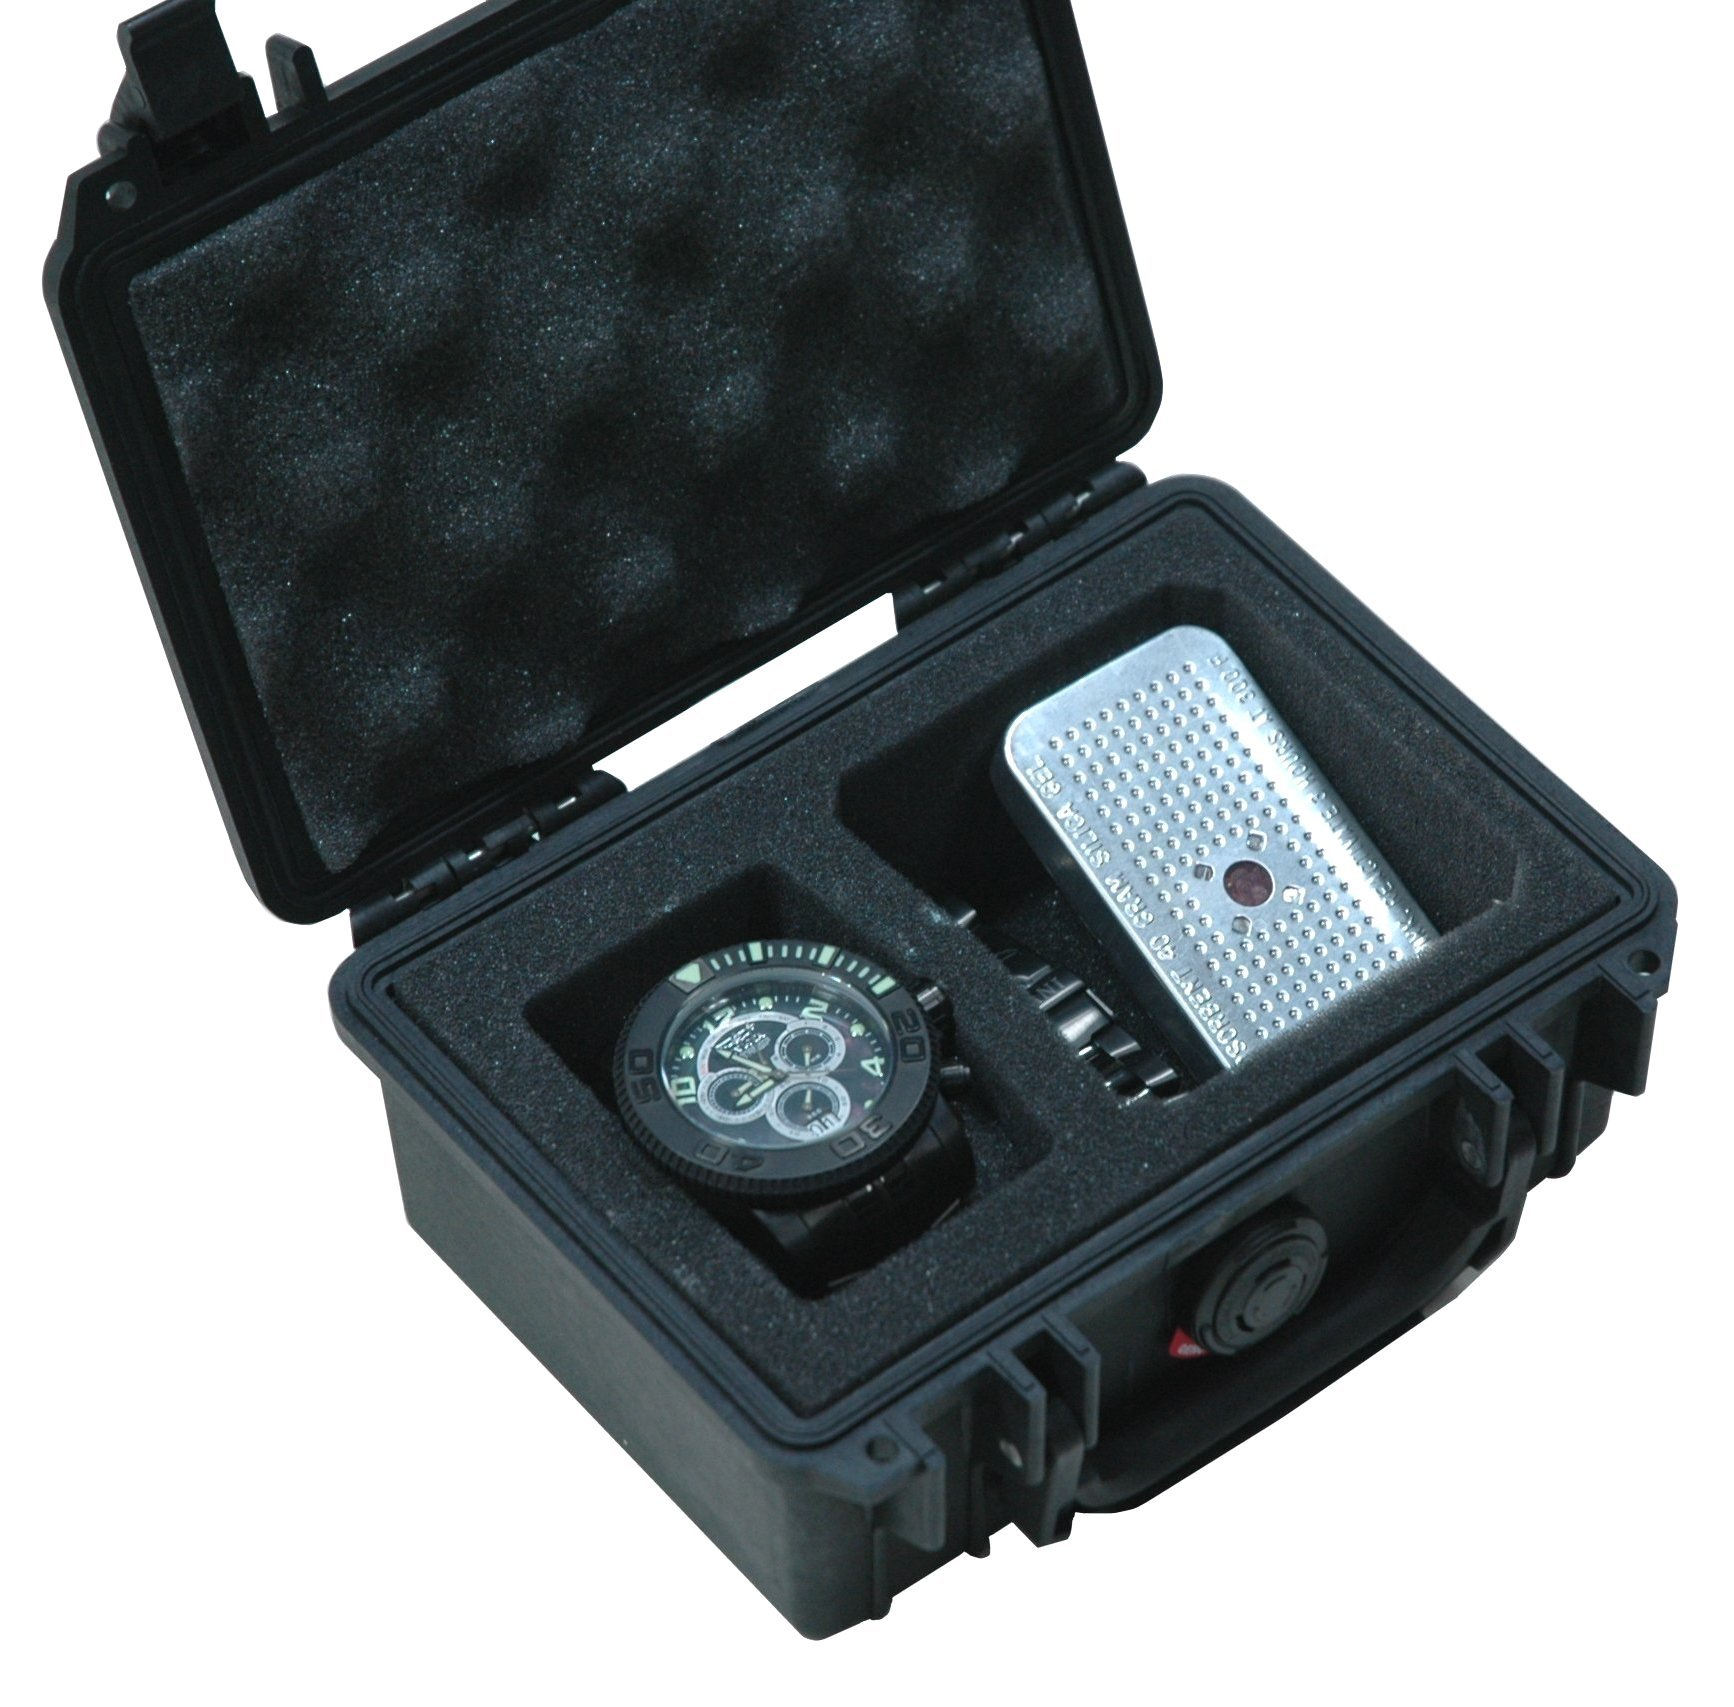 Case Club Waterproof Watch Travel Case with Accessory Pocket